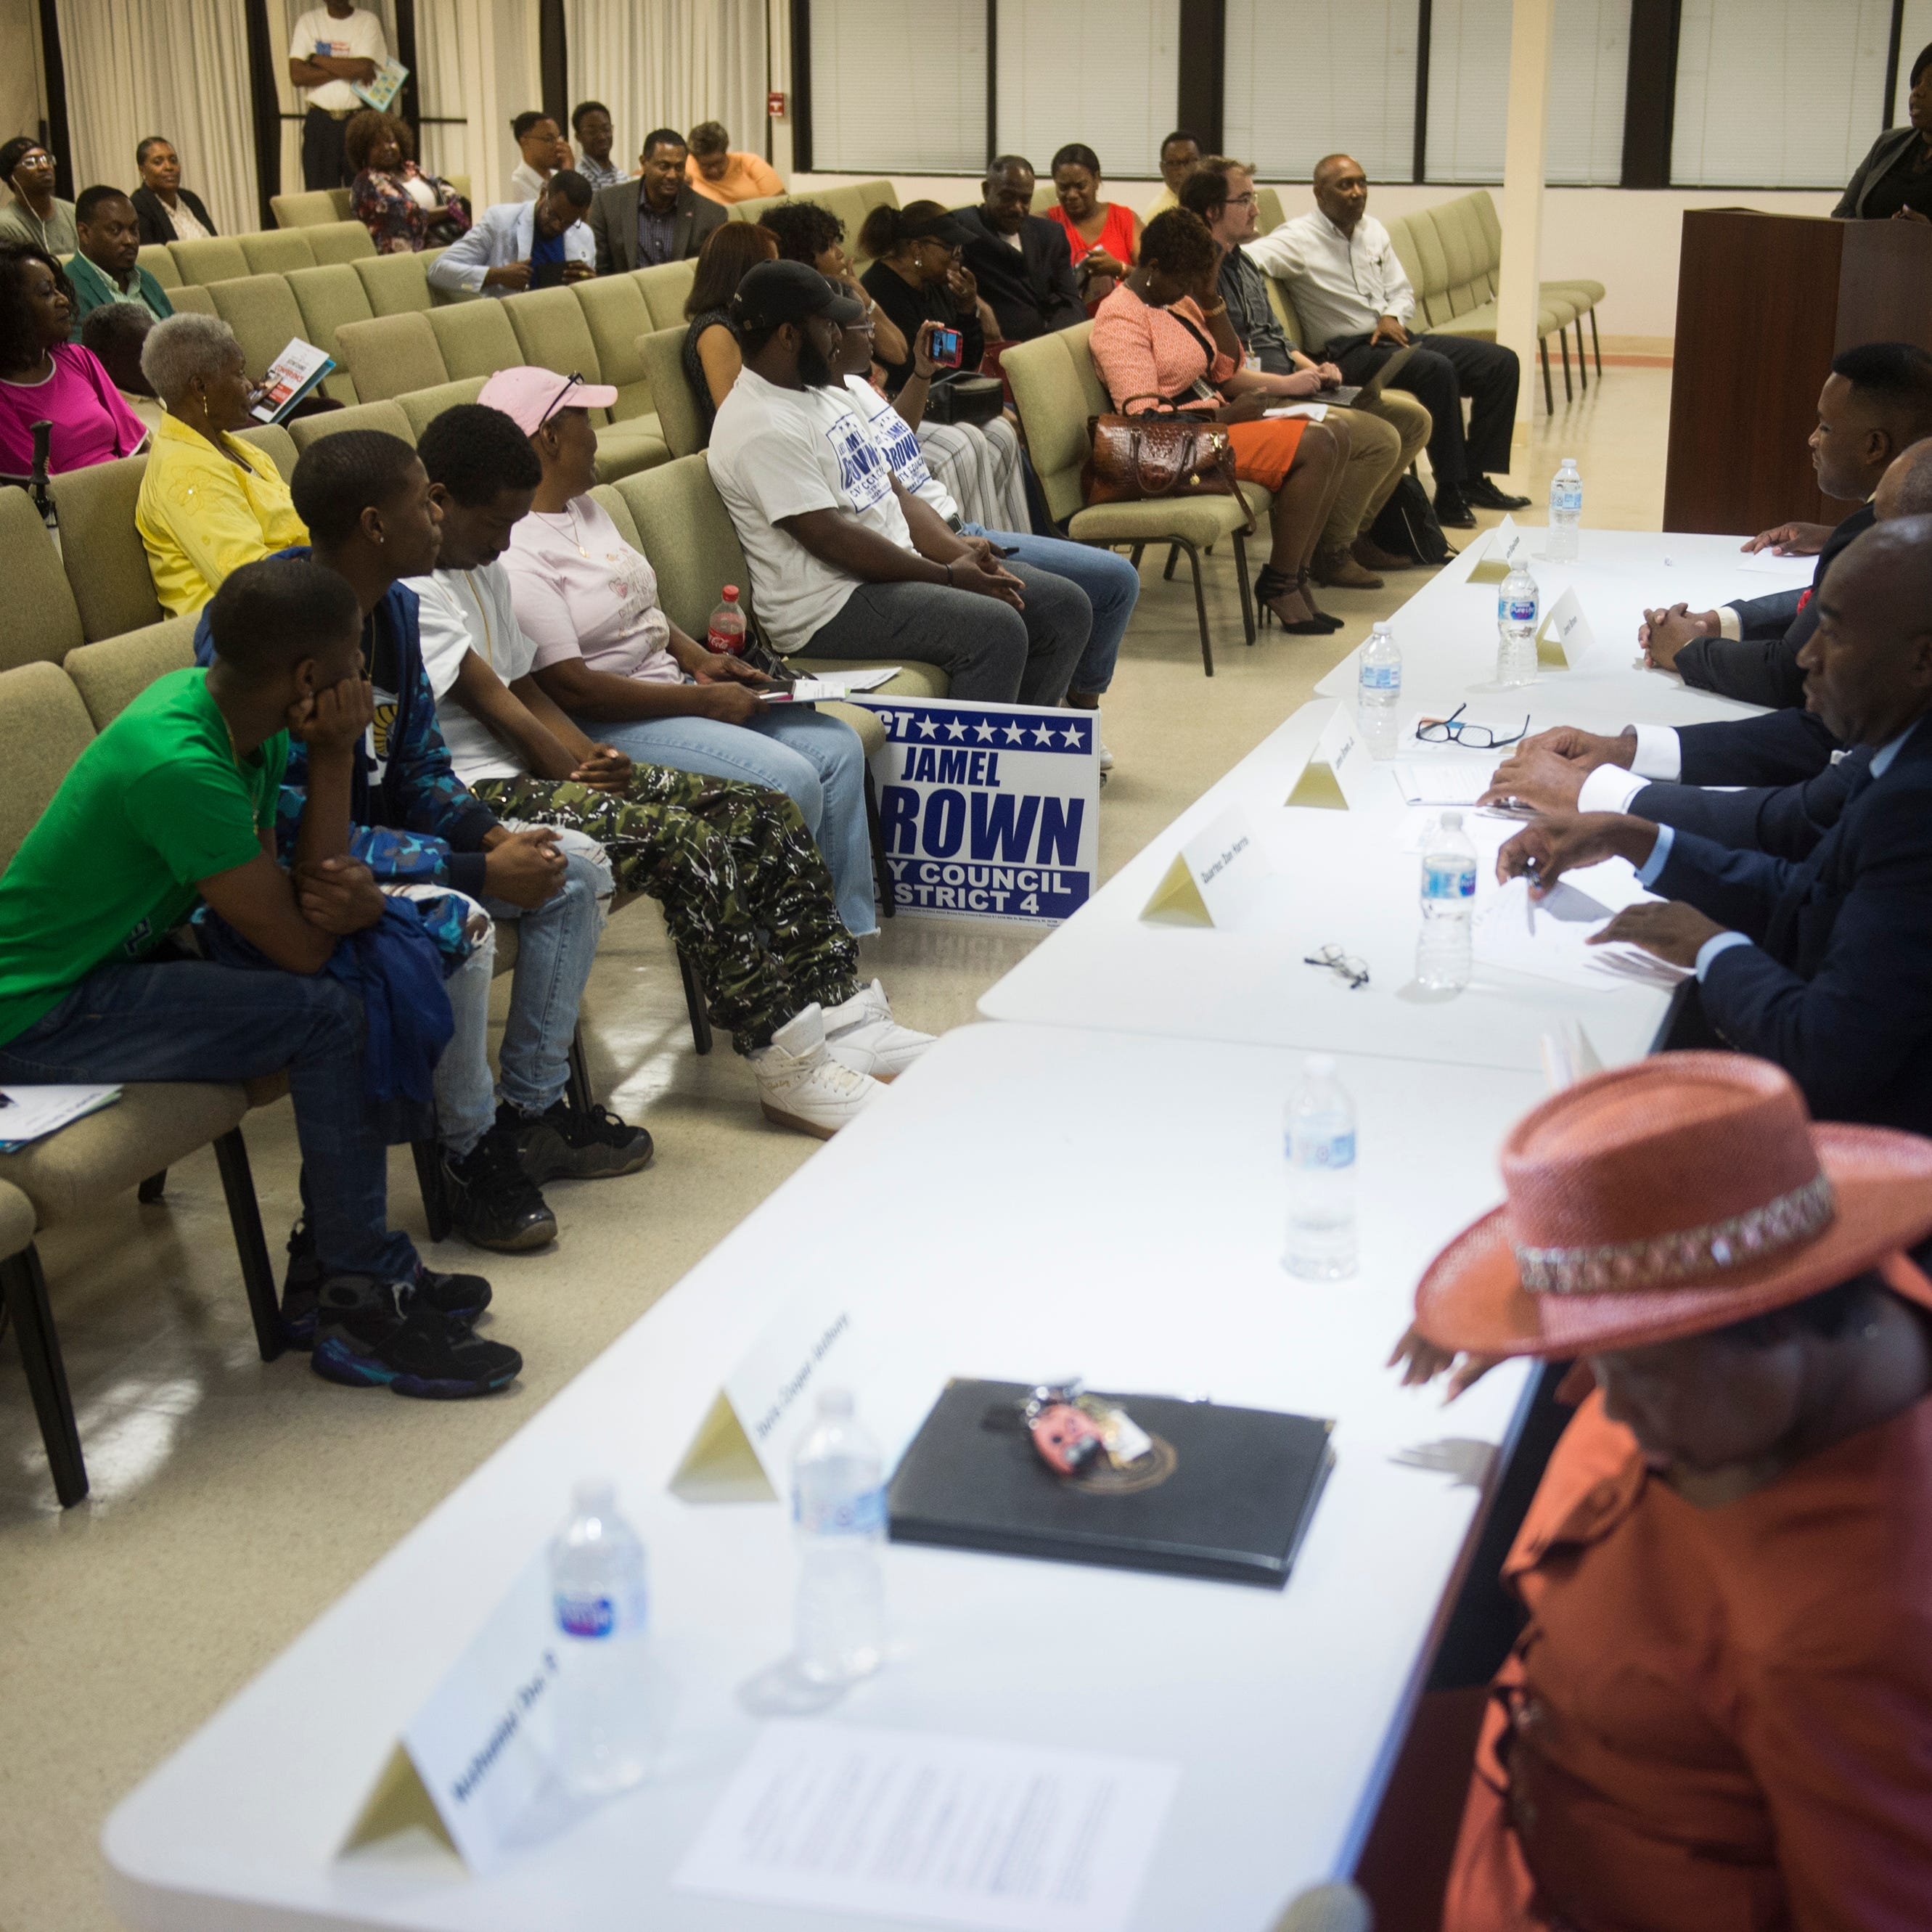 District 4 candidates face off over economics, revitalization and perception in Tuesday forum